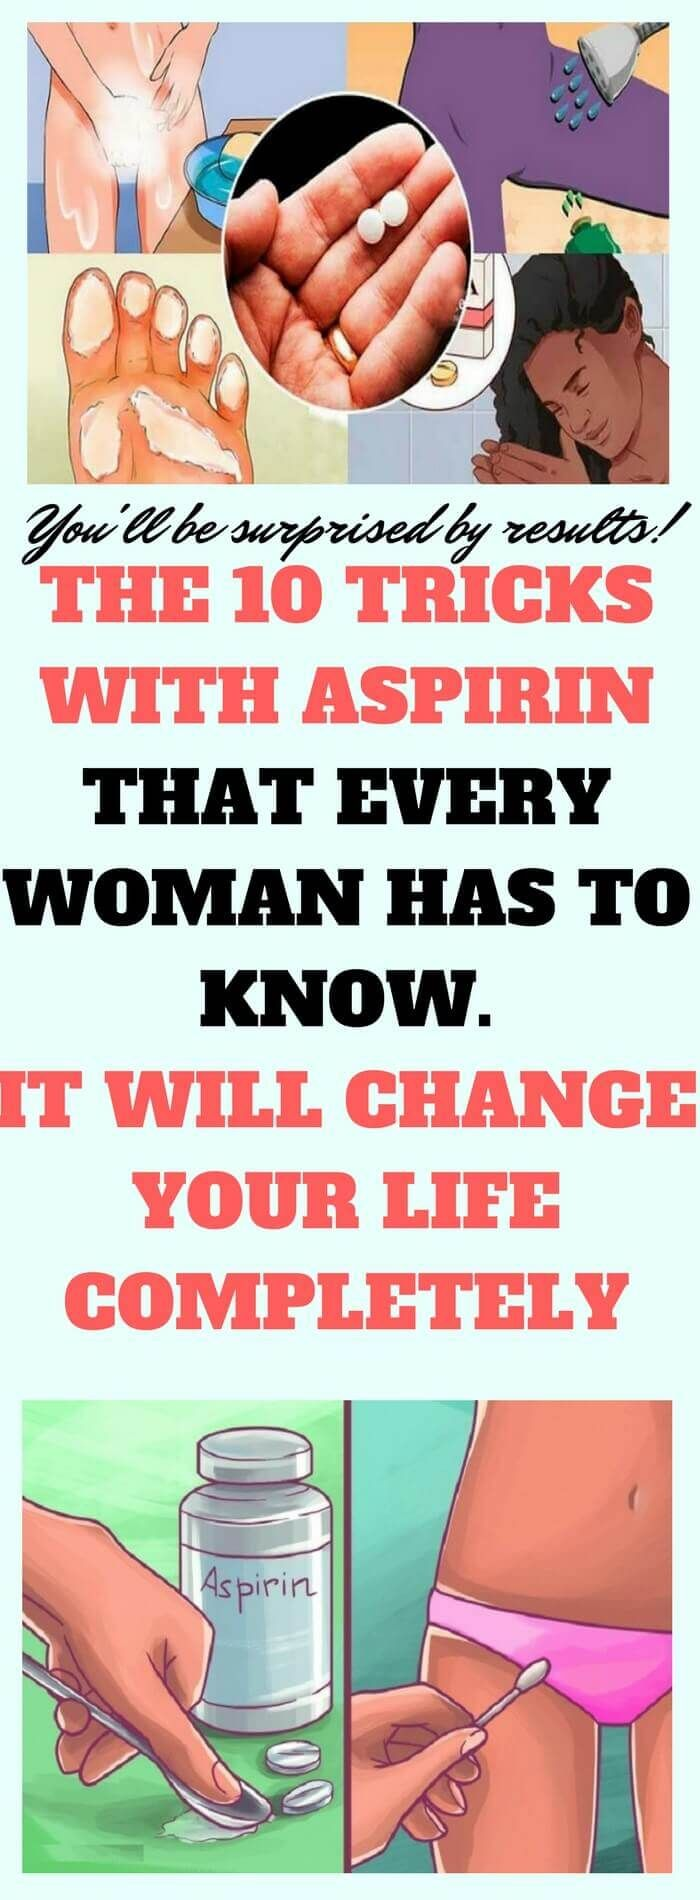 Aspirin is one of the most commonly used drugs nowadays. Taking aspirin is a great way to kill a headache, relieve fever, ease tooth pain, or to prevent a heart attack or stroke in people with clotting disorders. #haircolor #beauty #hair #facial #skincare #skin #acne